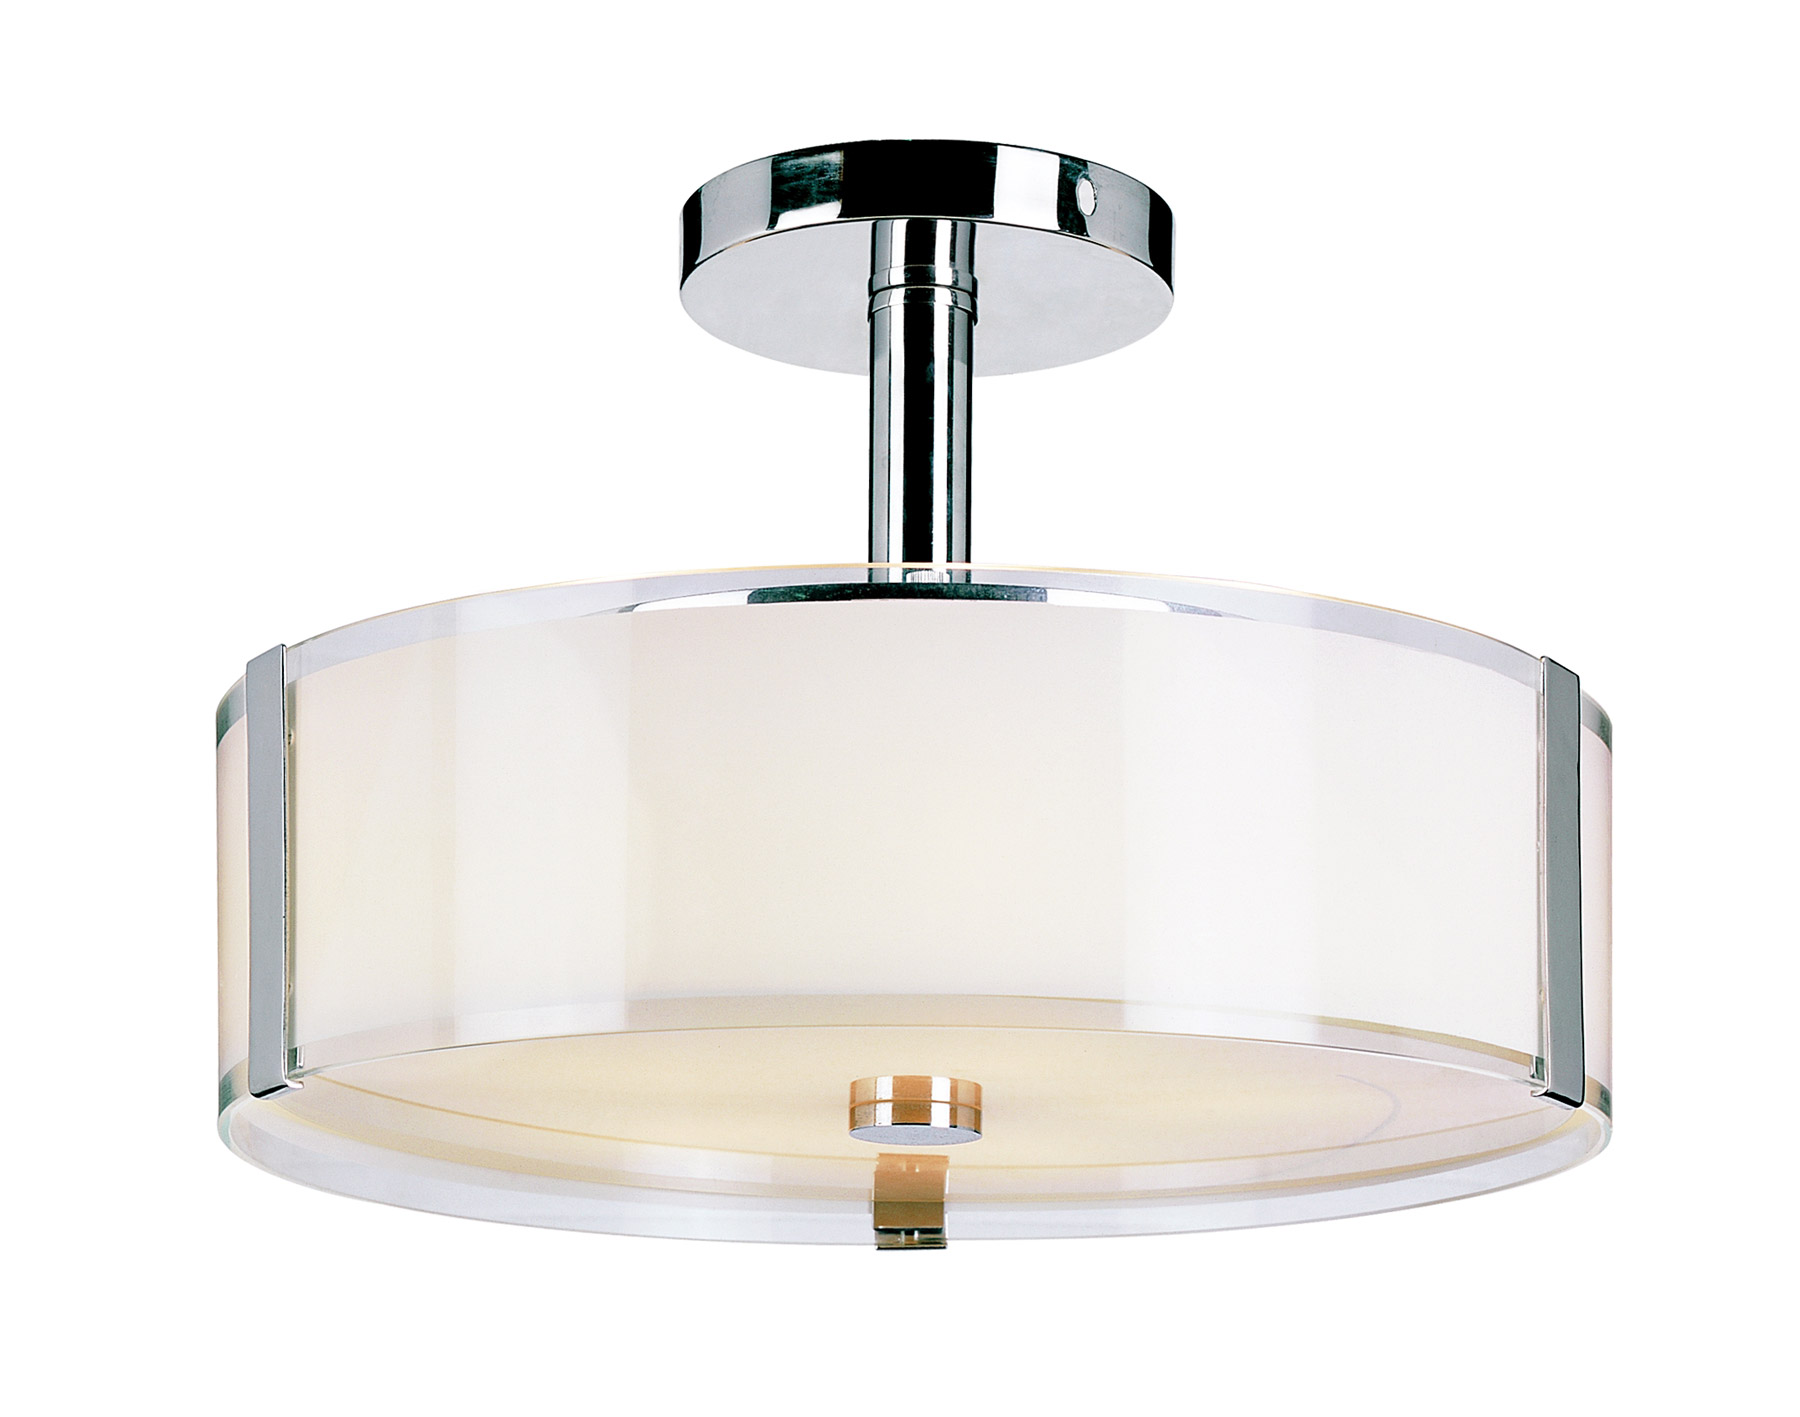 Comfy Flush Mount Lighting For Home Lighting Design With Flush Mount Ceiling Light